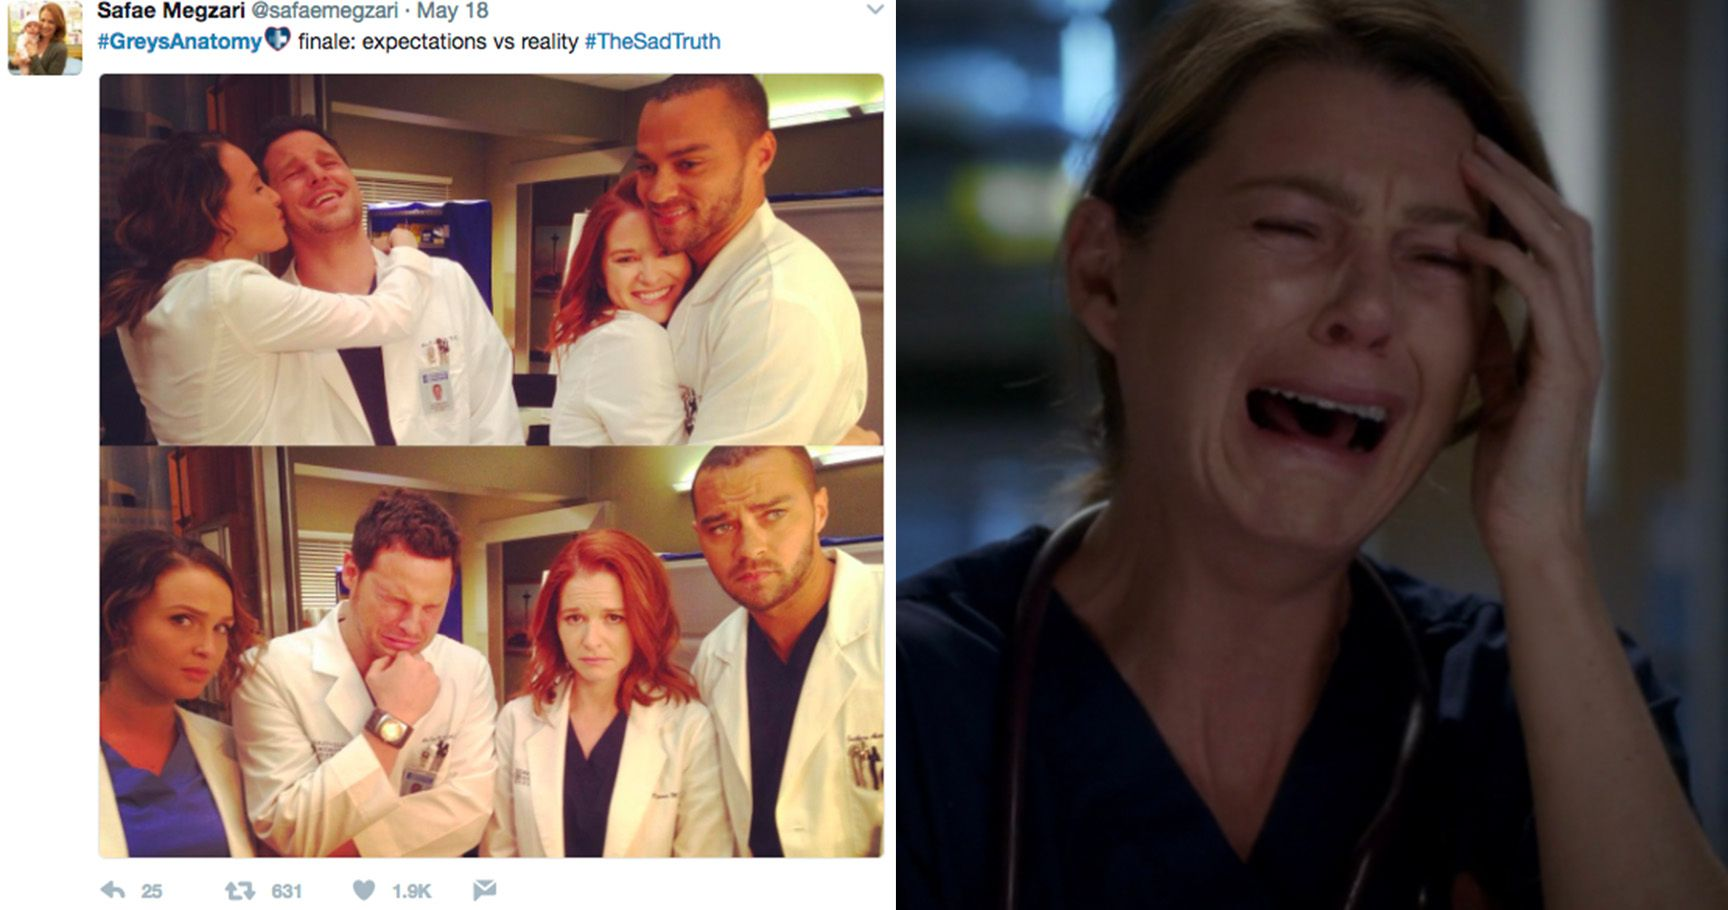 15 Things We Were All Thinking During That Greys Anatomy Finale